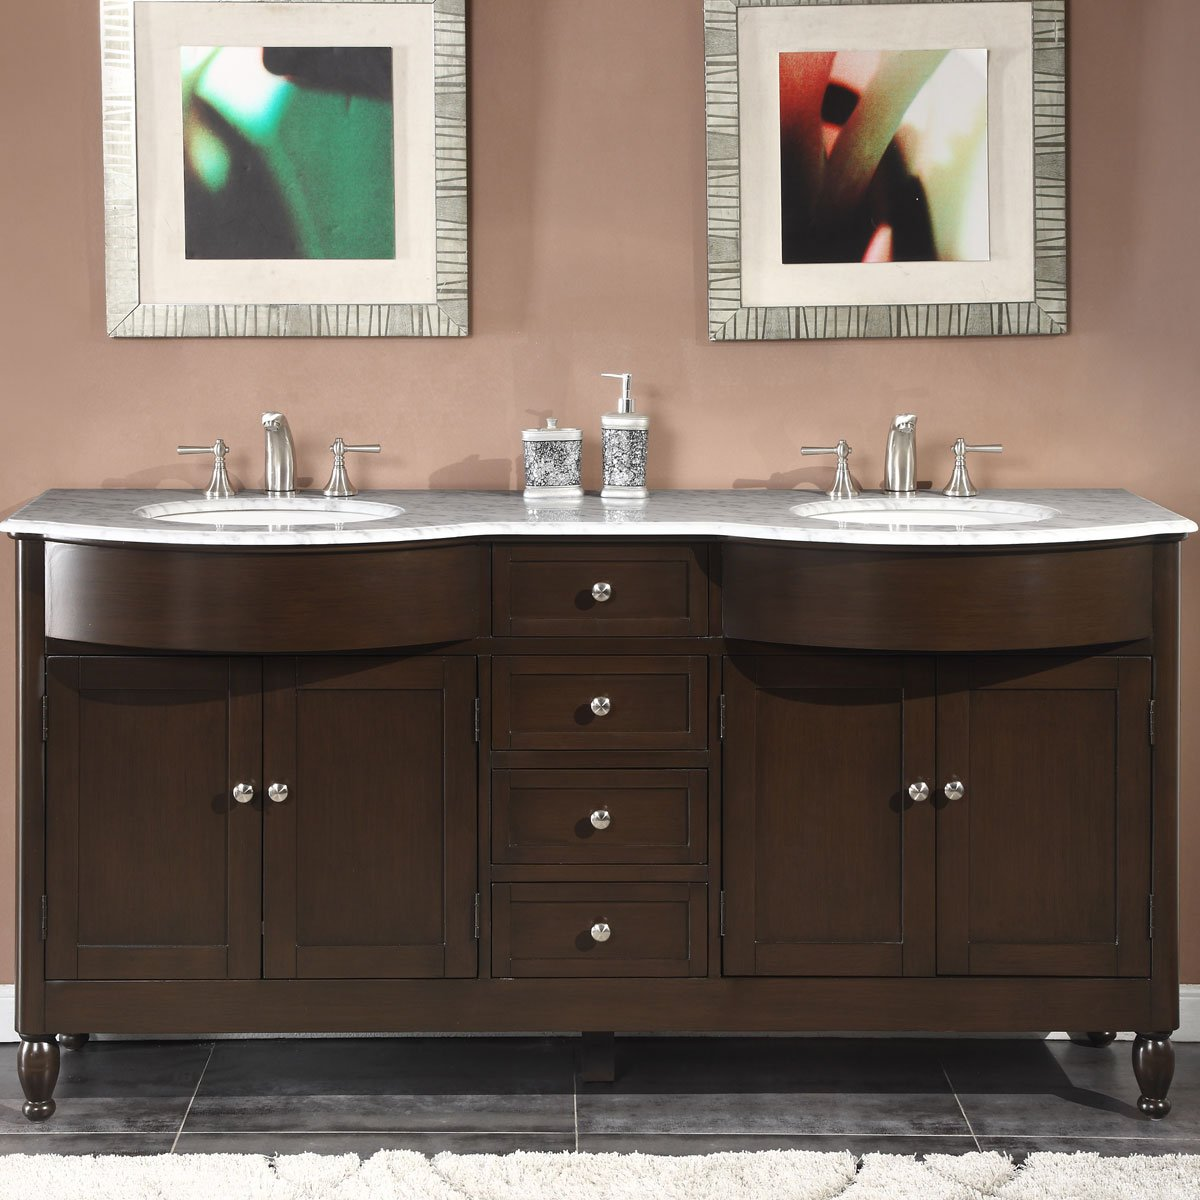 Silkroad Exclusive HYP-0717-WM-UWC-72 Marble Top Double Sink Bathroom Vanity with Dark Walnut Finish Cabinet, 72 , Dark Wood